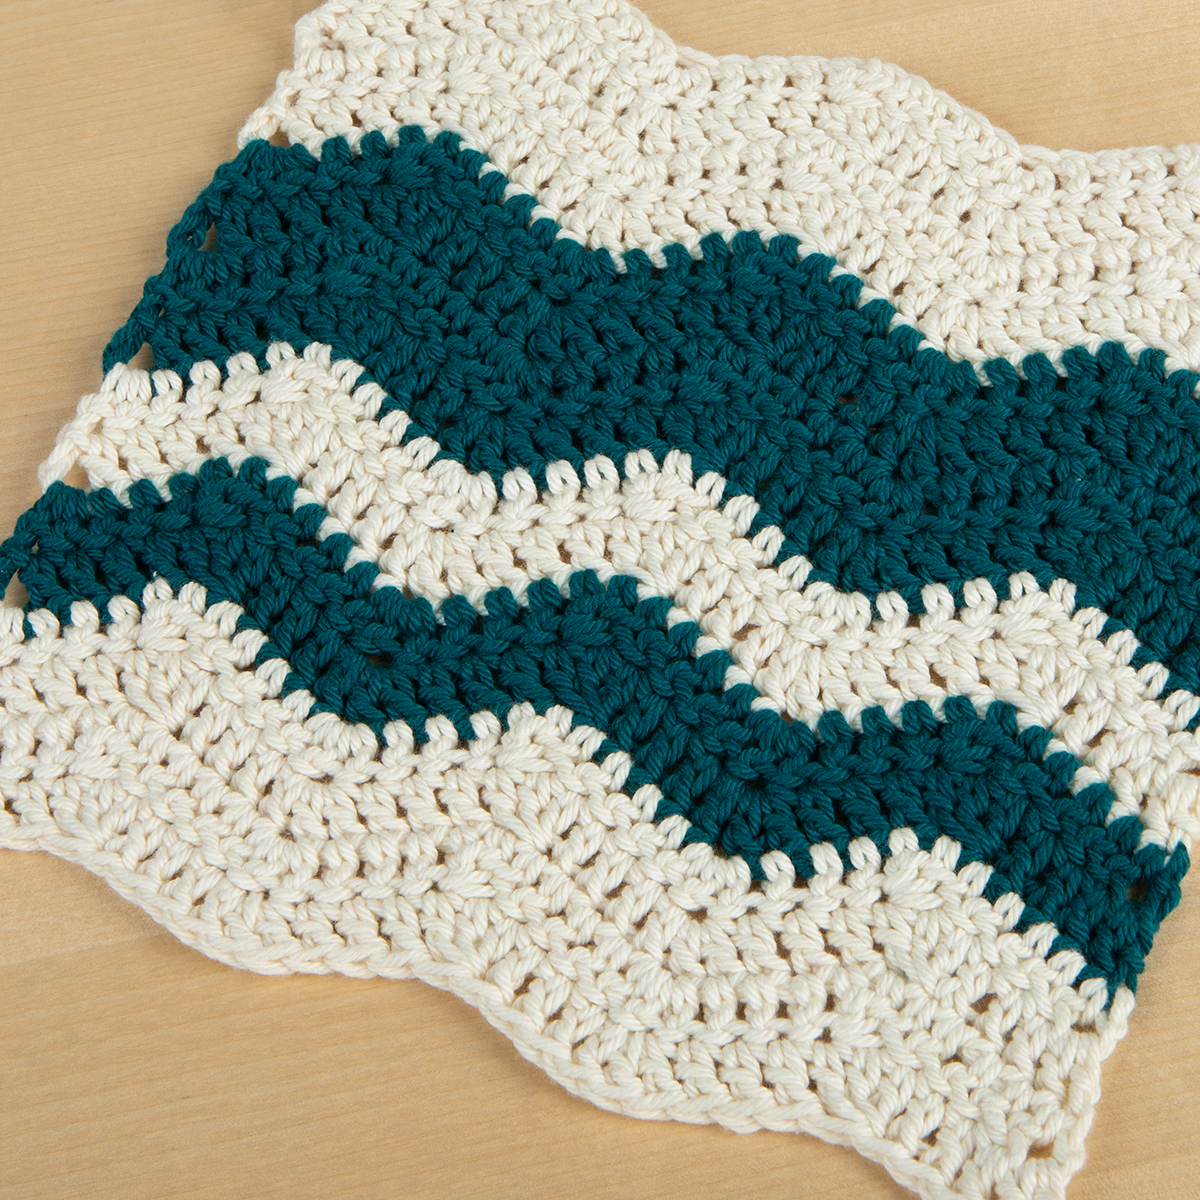 Crochet Patterns Free For Beginners Dishcloths : Wavy Chevron Crochet Dishcloth - Knitting Patterns and ...